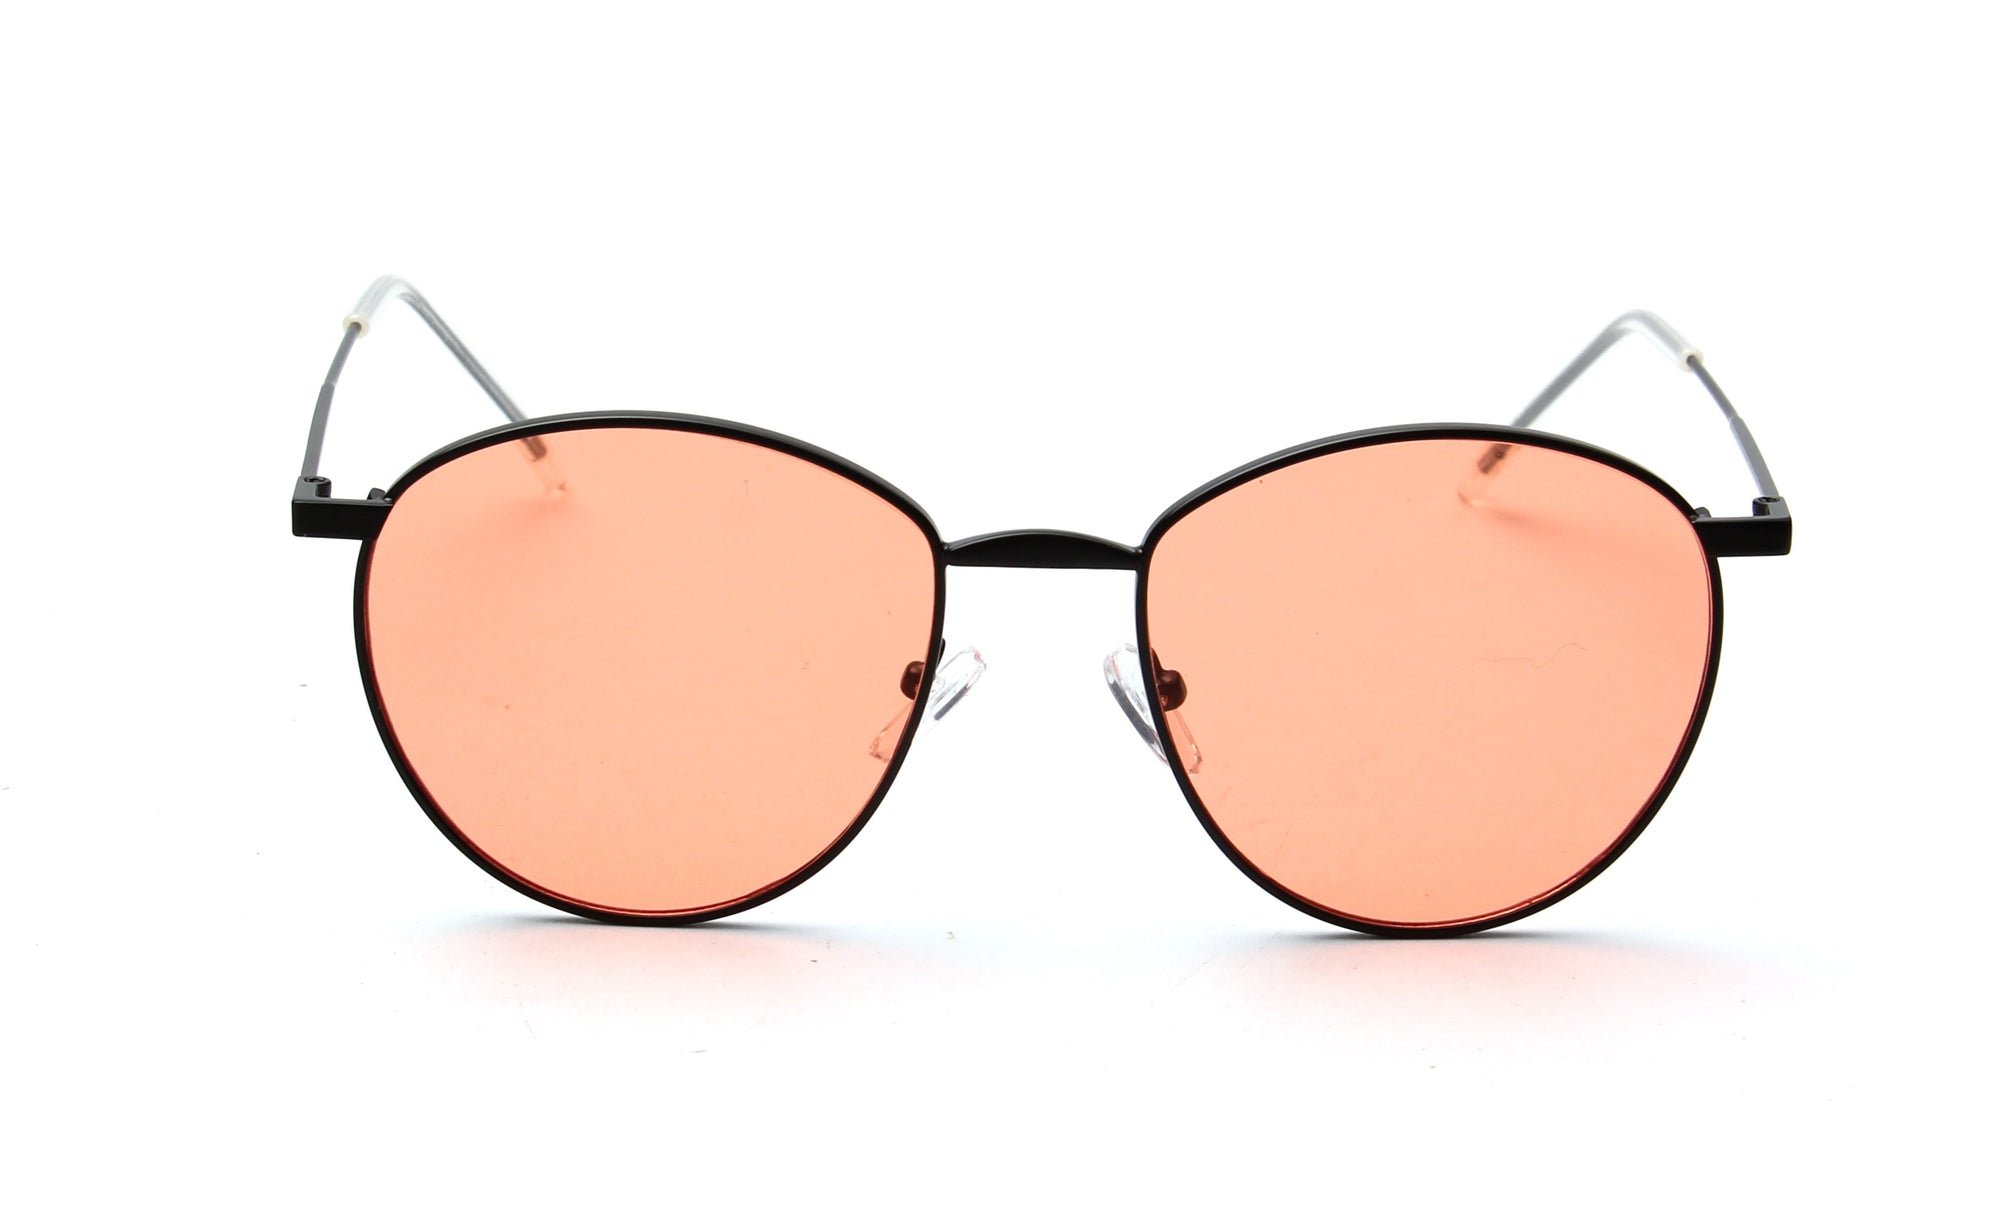 S2051 - Classic Round Tinted Lens Fashion Sunglasses - Wholesale Sunglasses and glasses